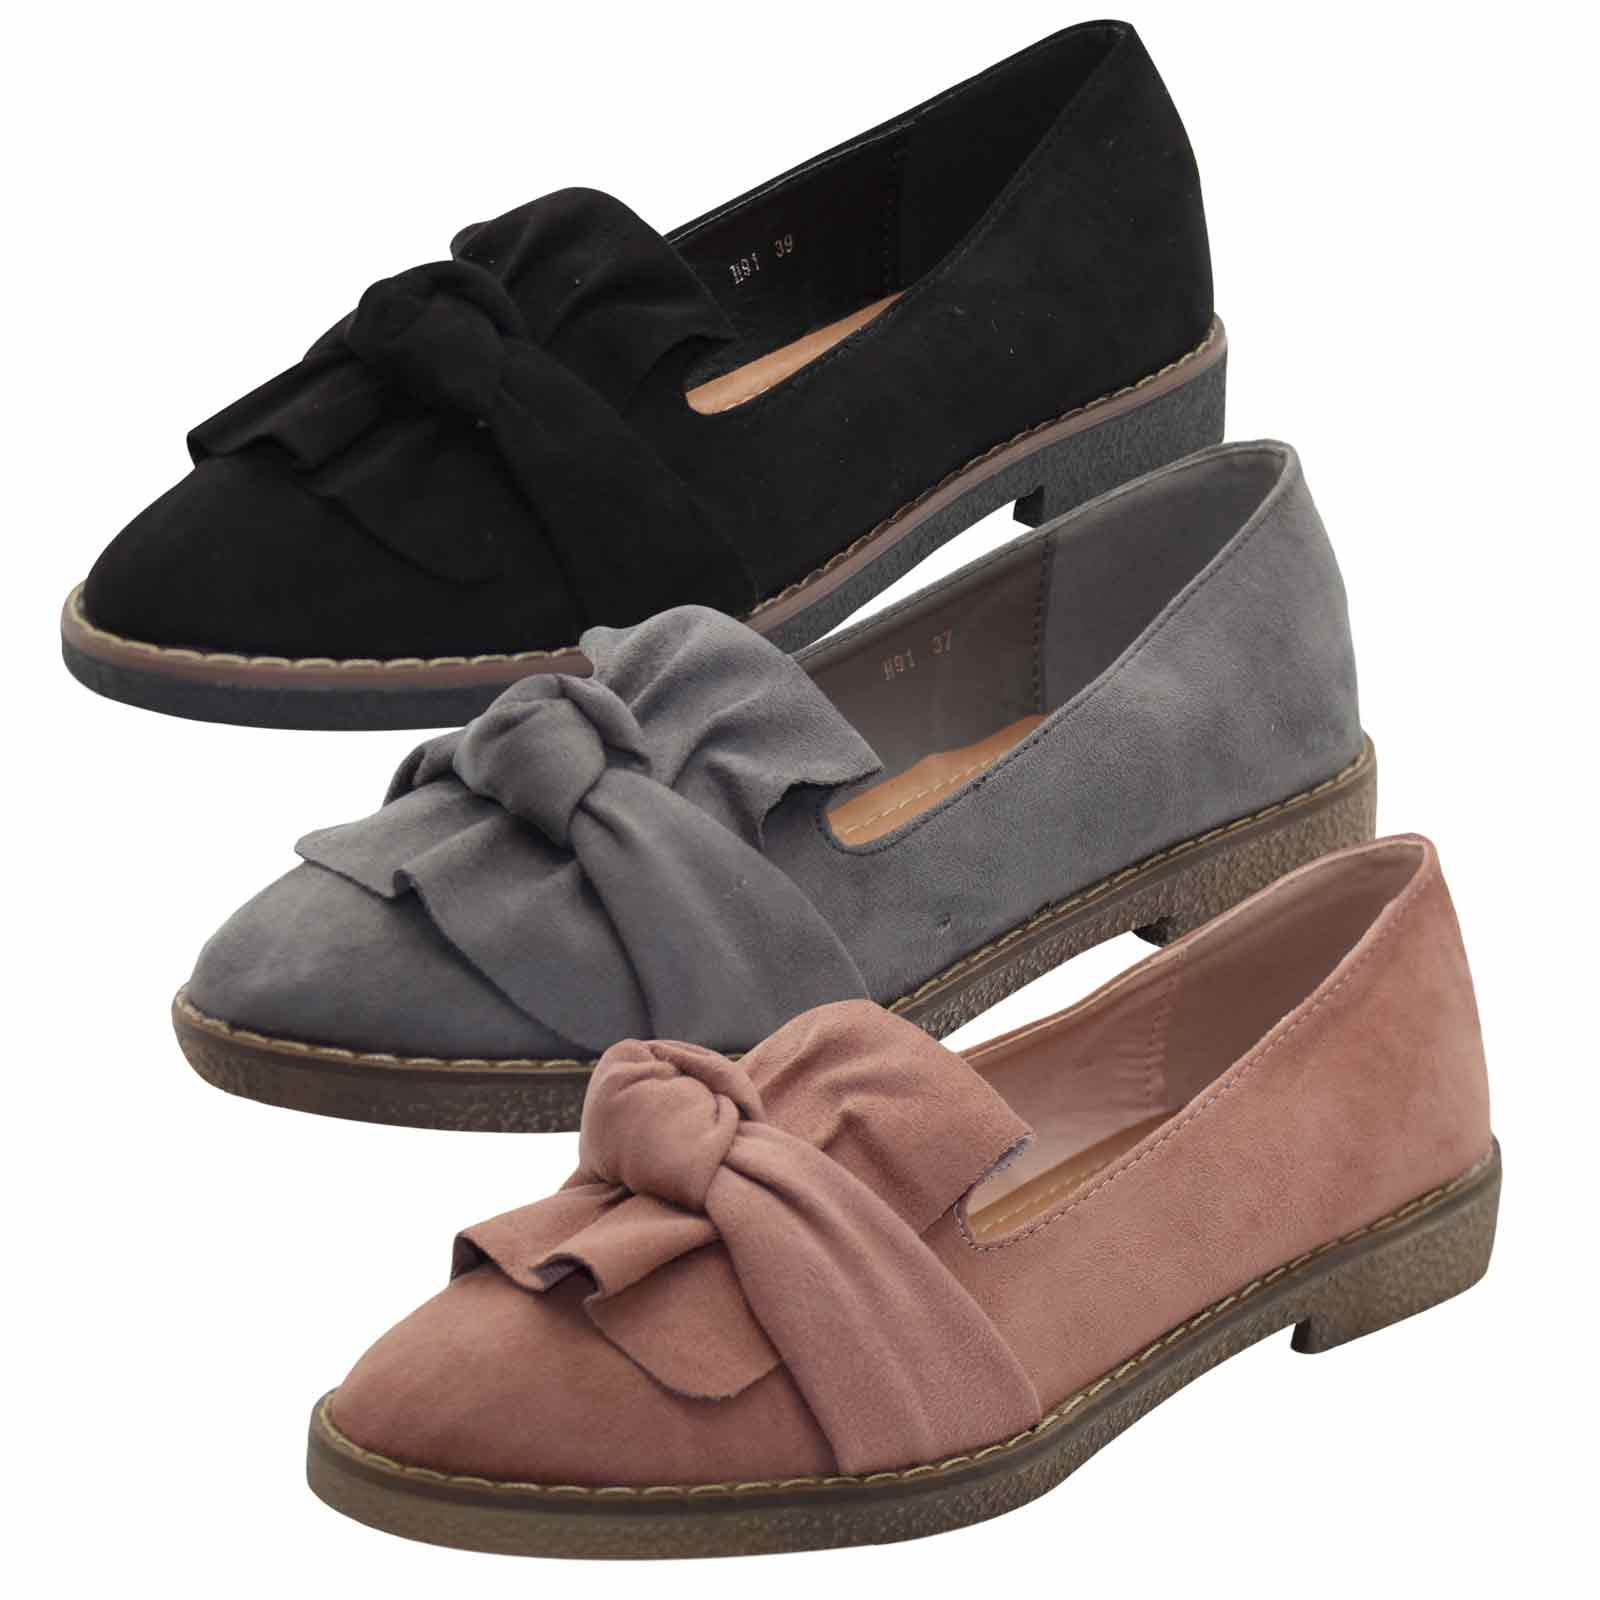 LADIES NEW LOOK FAUX SUEDE BOW DETAIL FLAT BALLERINA DOLLY PUMPS BLACK UK 3-8